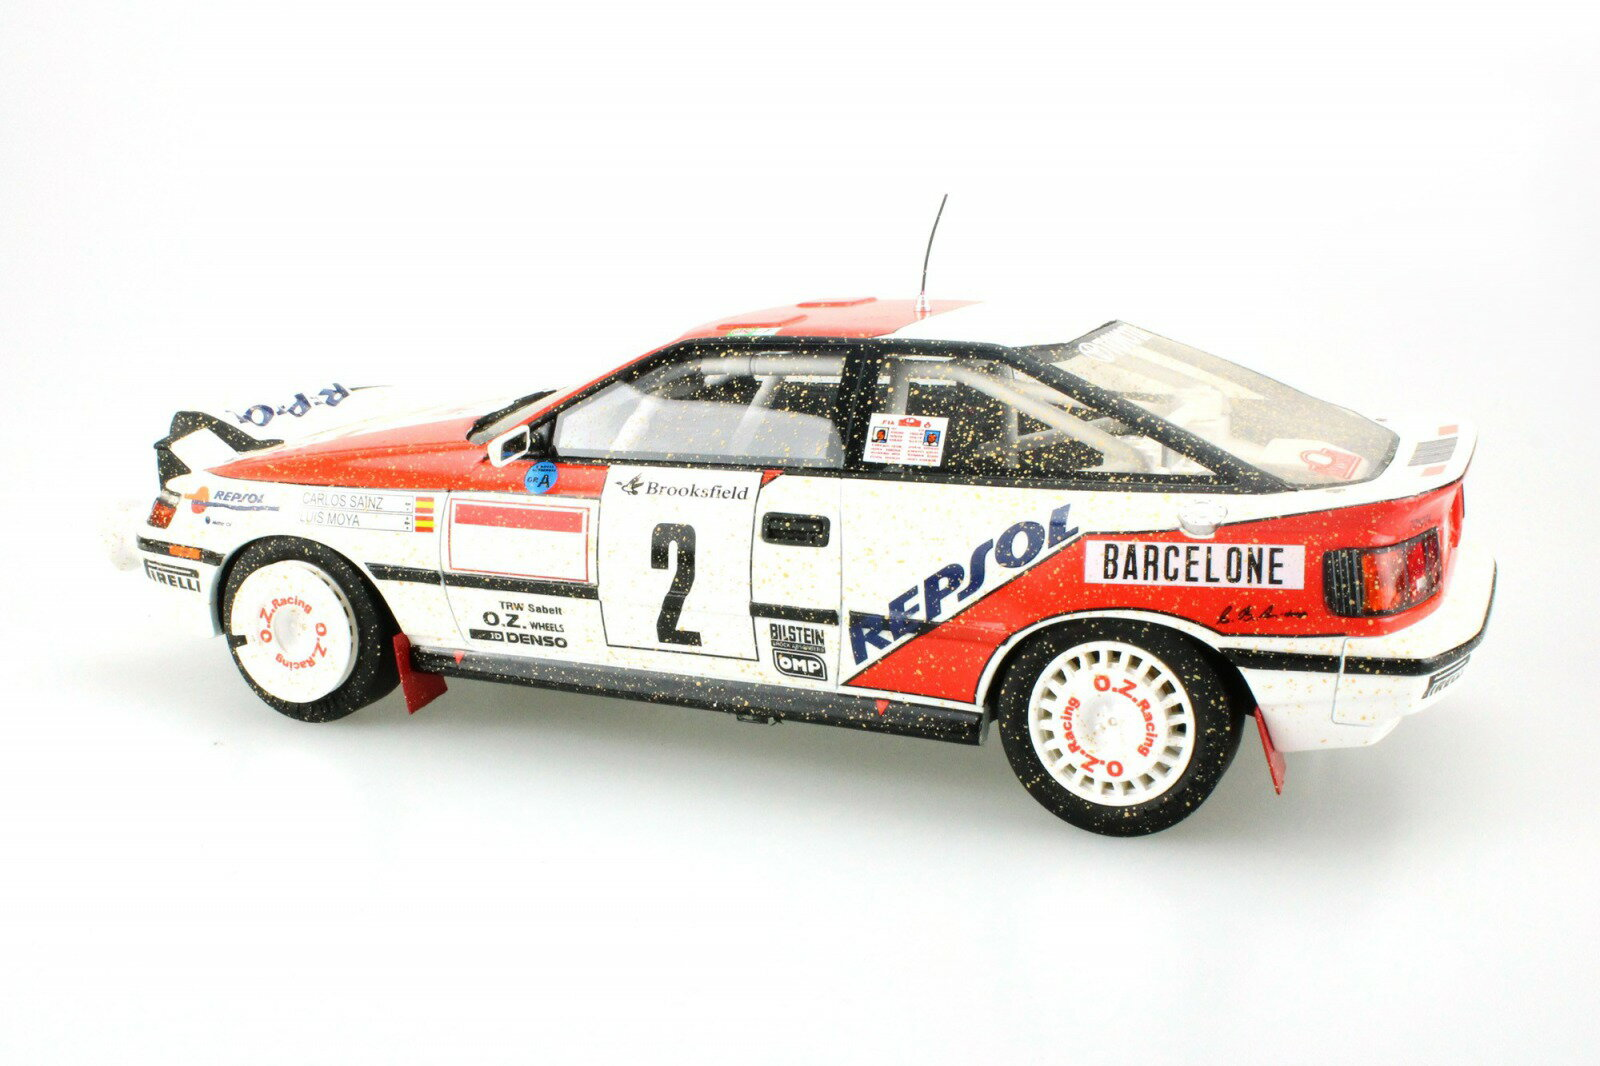 Topmarques トップマルケス 1:18 1991年モンテカルロラリー優勝モデル トヨタ セリカ GT4 ST165 No.2 サインツTOYOTA - CELICA ST165 (night version) N 2 WINNER RALLY MONTECARLO 1991 CARLOS SAINZ - LUIS MOYA 1/18 by Topmarques NEW